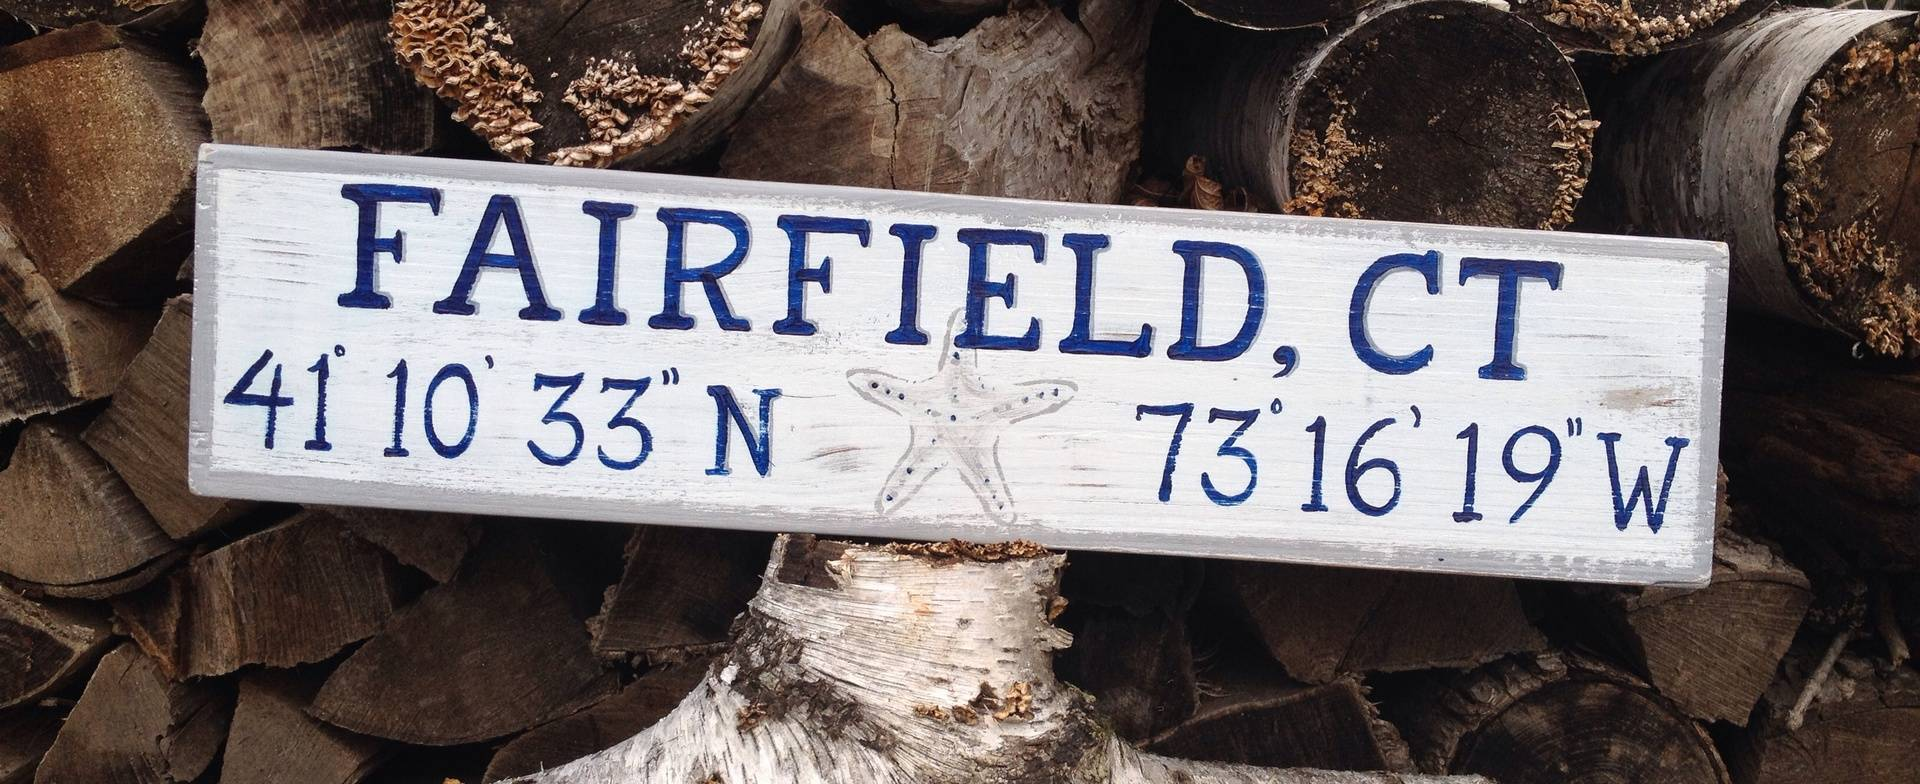 Small Fairfield, CT sign